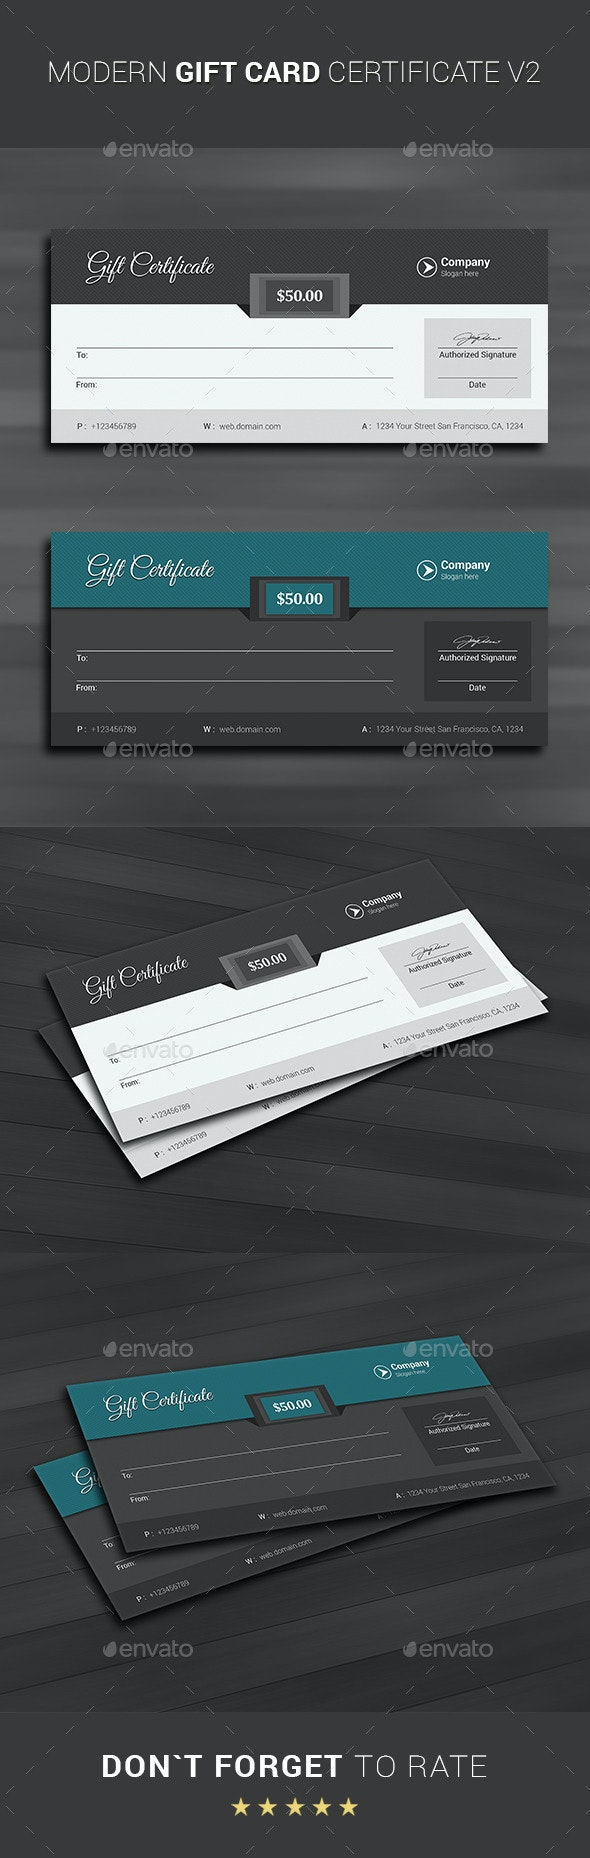 Gift Card Certificate - Cards & Invites Print Templates